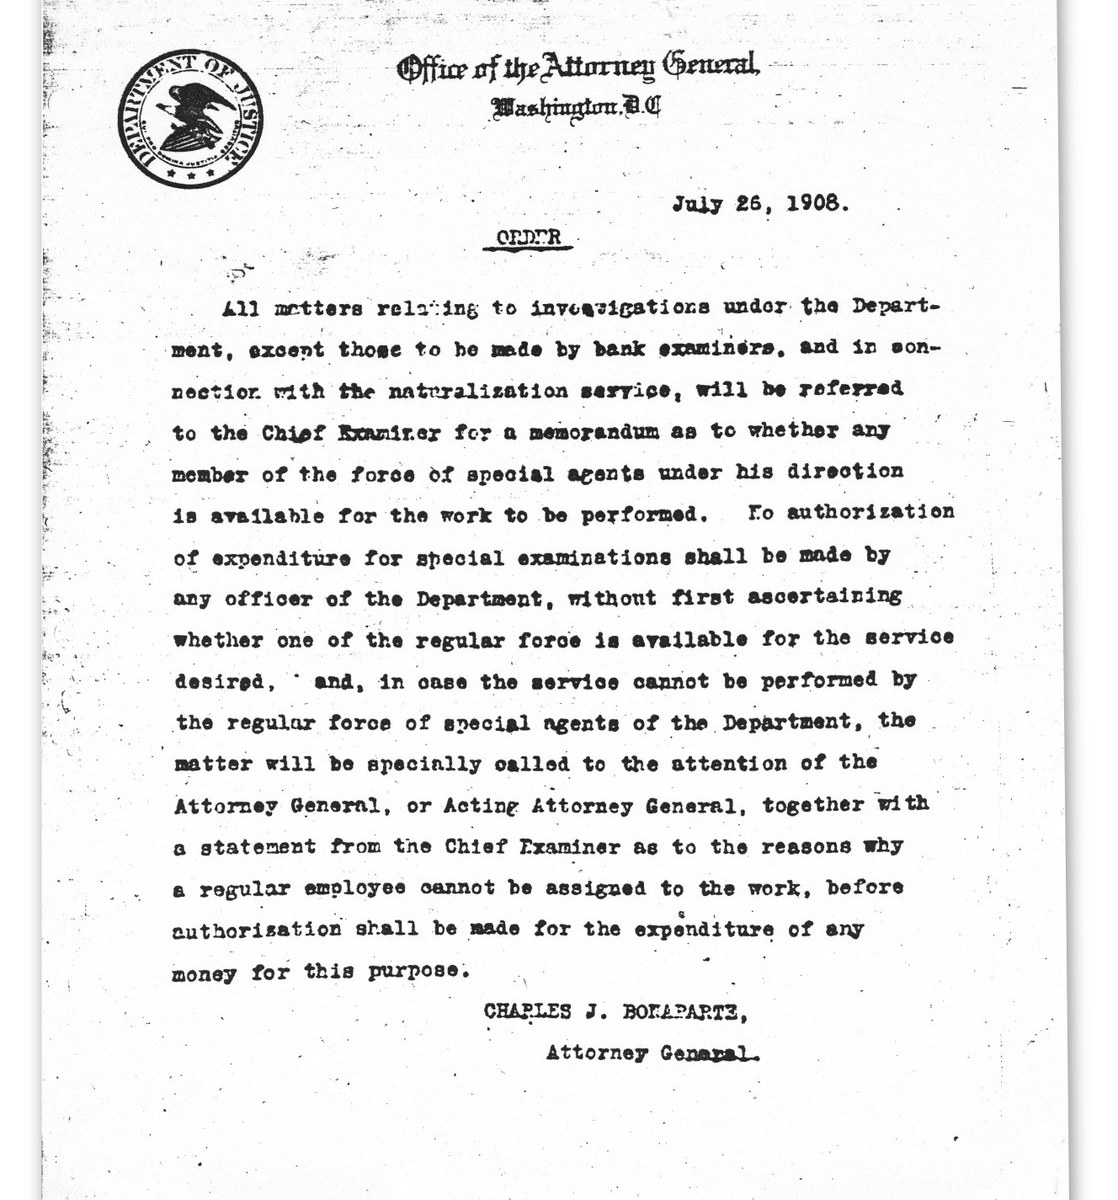 "It all started with a short memo, dated July 26, 1908, and signed by Charles J. Bonaparte, Attorney General, describing a ""regular force of special agents"" available to investigate certain cases of the Department of Justice. This memo is celebrated as the official birth of the Federal Bureau of Investigation—known throughout the world today as the FBI."